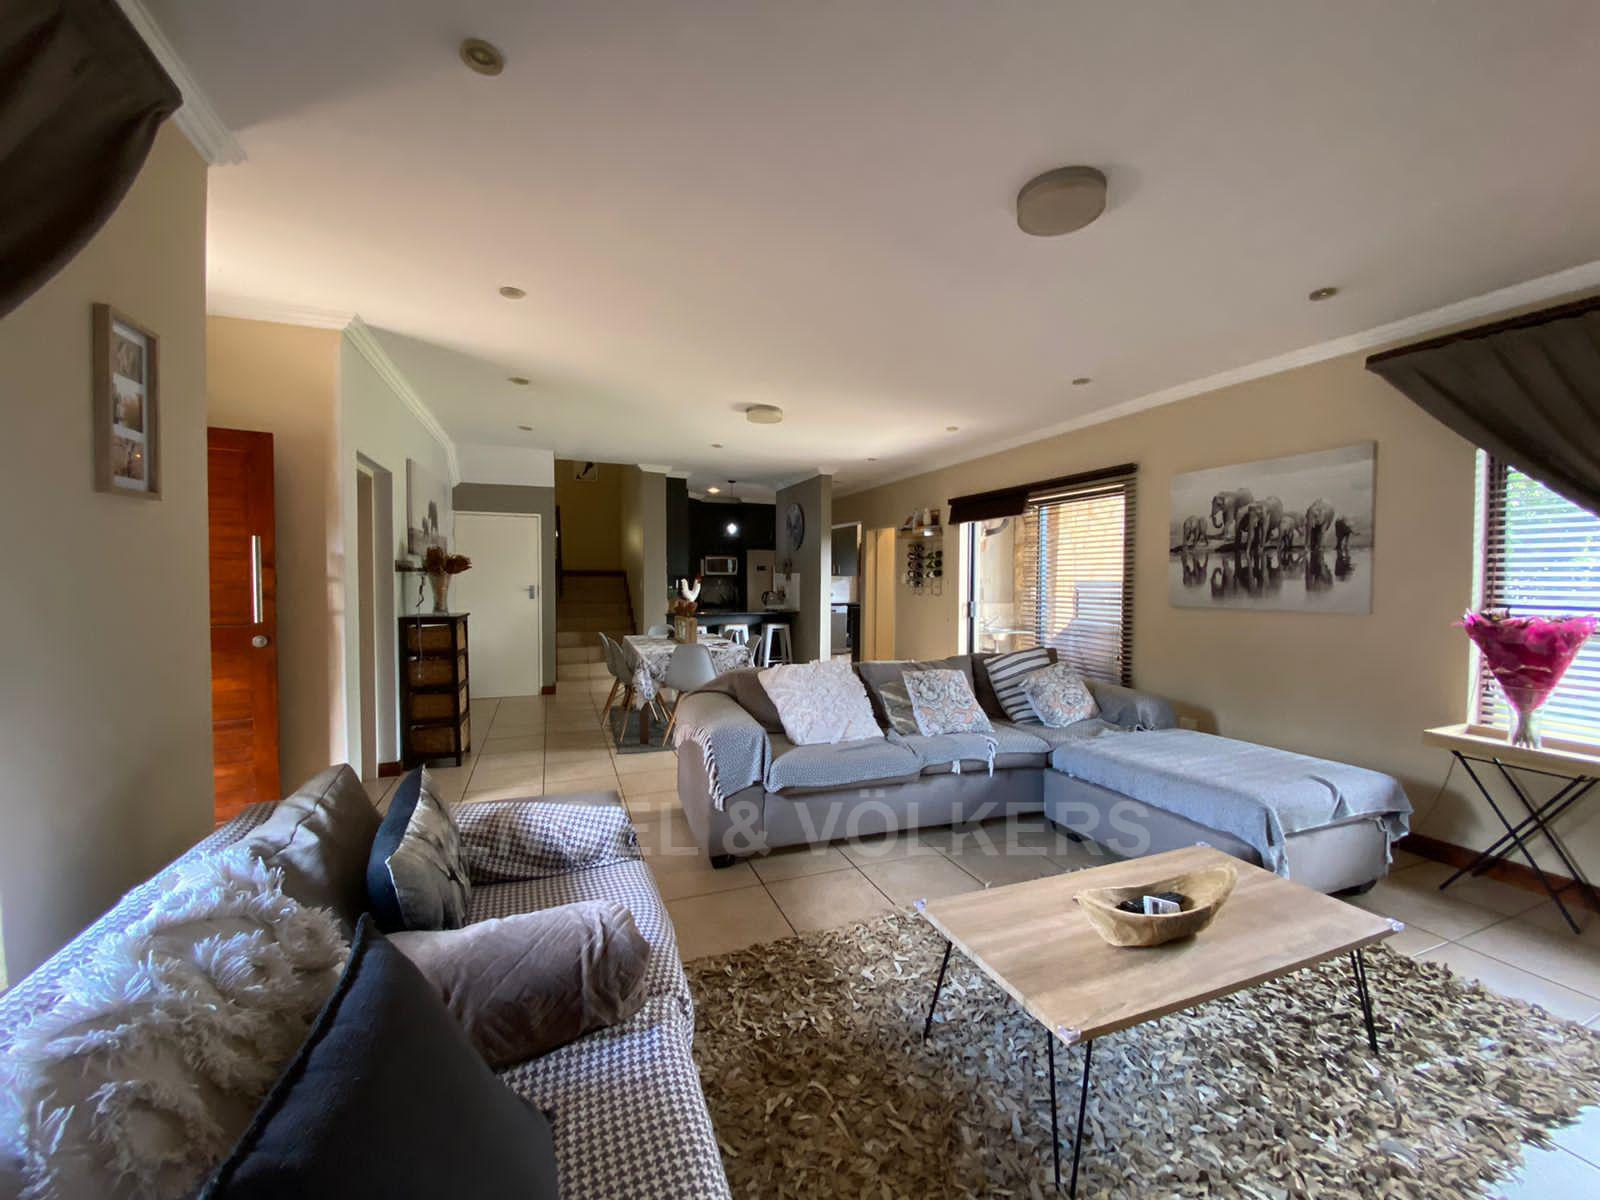 House in Melodie - Living area open plan